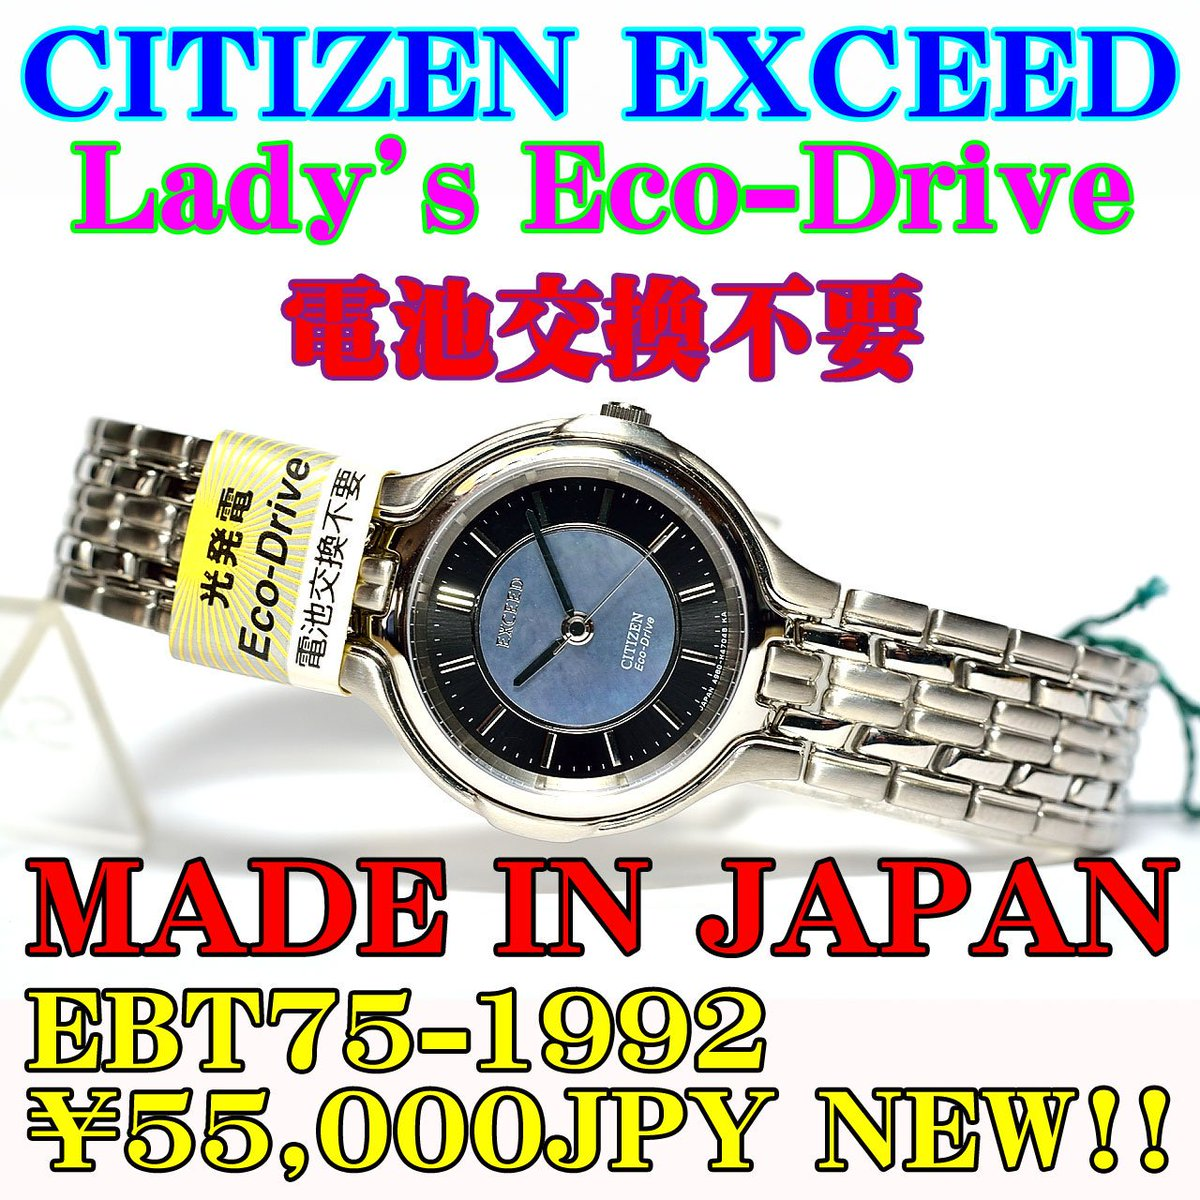 CITIZEN EXCEED LADY'S Eco-Drive EBT75-1992 55,000JPY NEW!! FREE International Shipping #ebay  #ujiie_japan  The last 1 in stock. made in Japan #citizen #japan #ecodrive #solar #last1 #present #popular